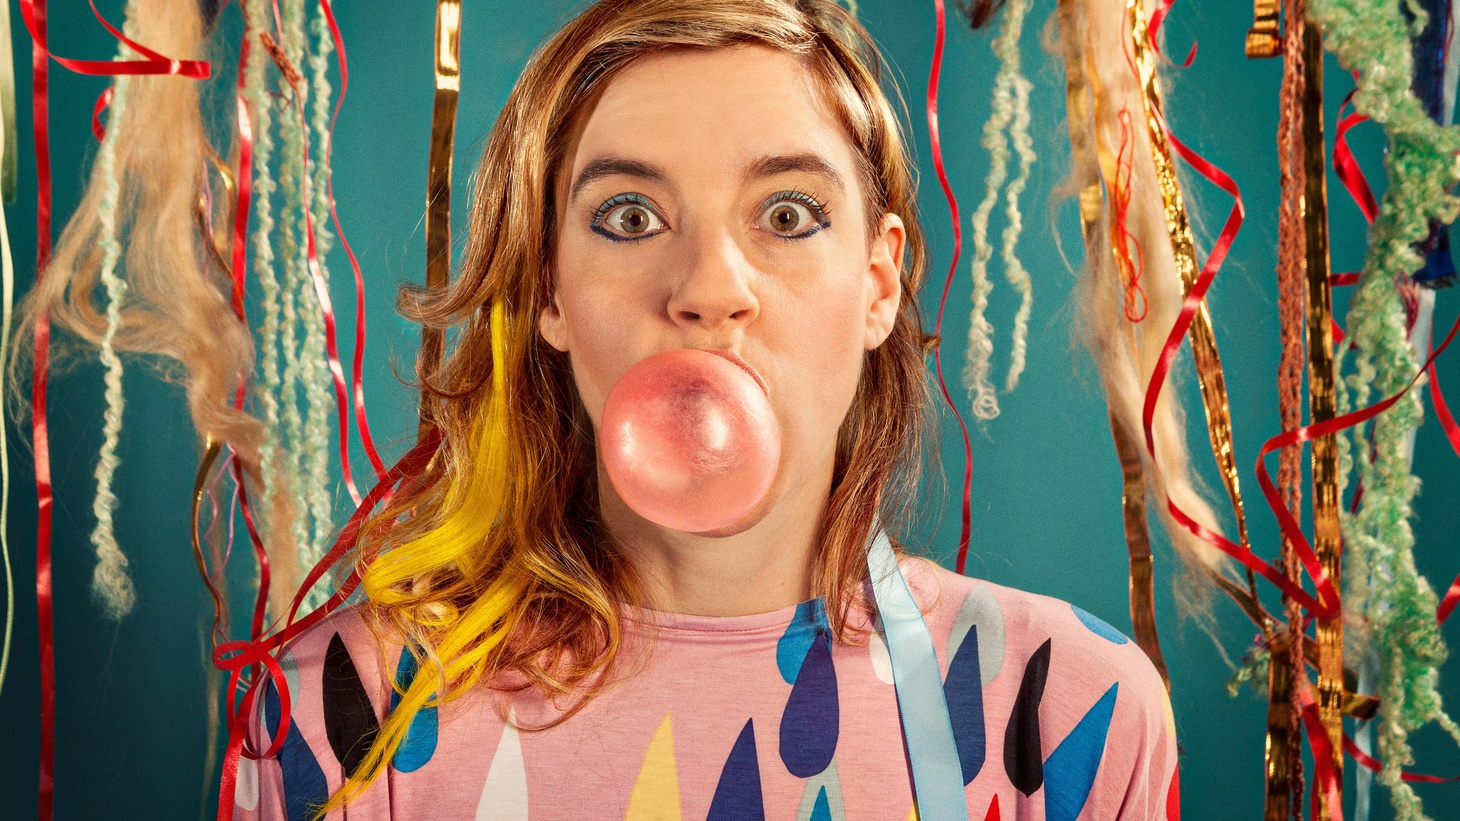 Merrill Garbus is an imaginative and whimsical artist best known as Tune-Yards. She delights with each new recording and her latest is no exception.